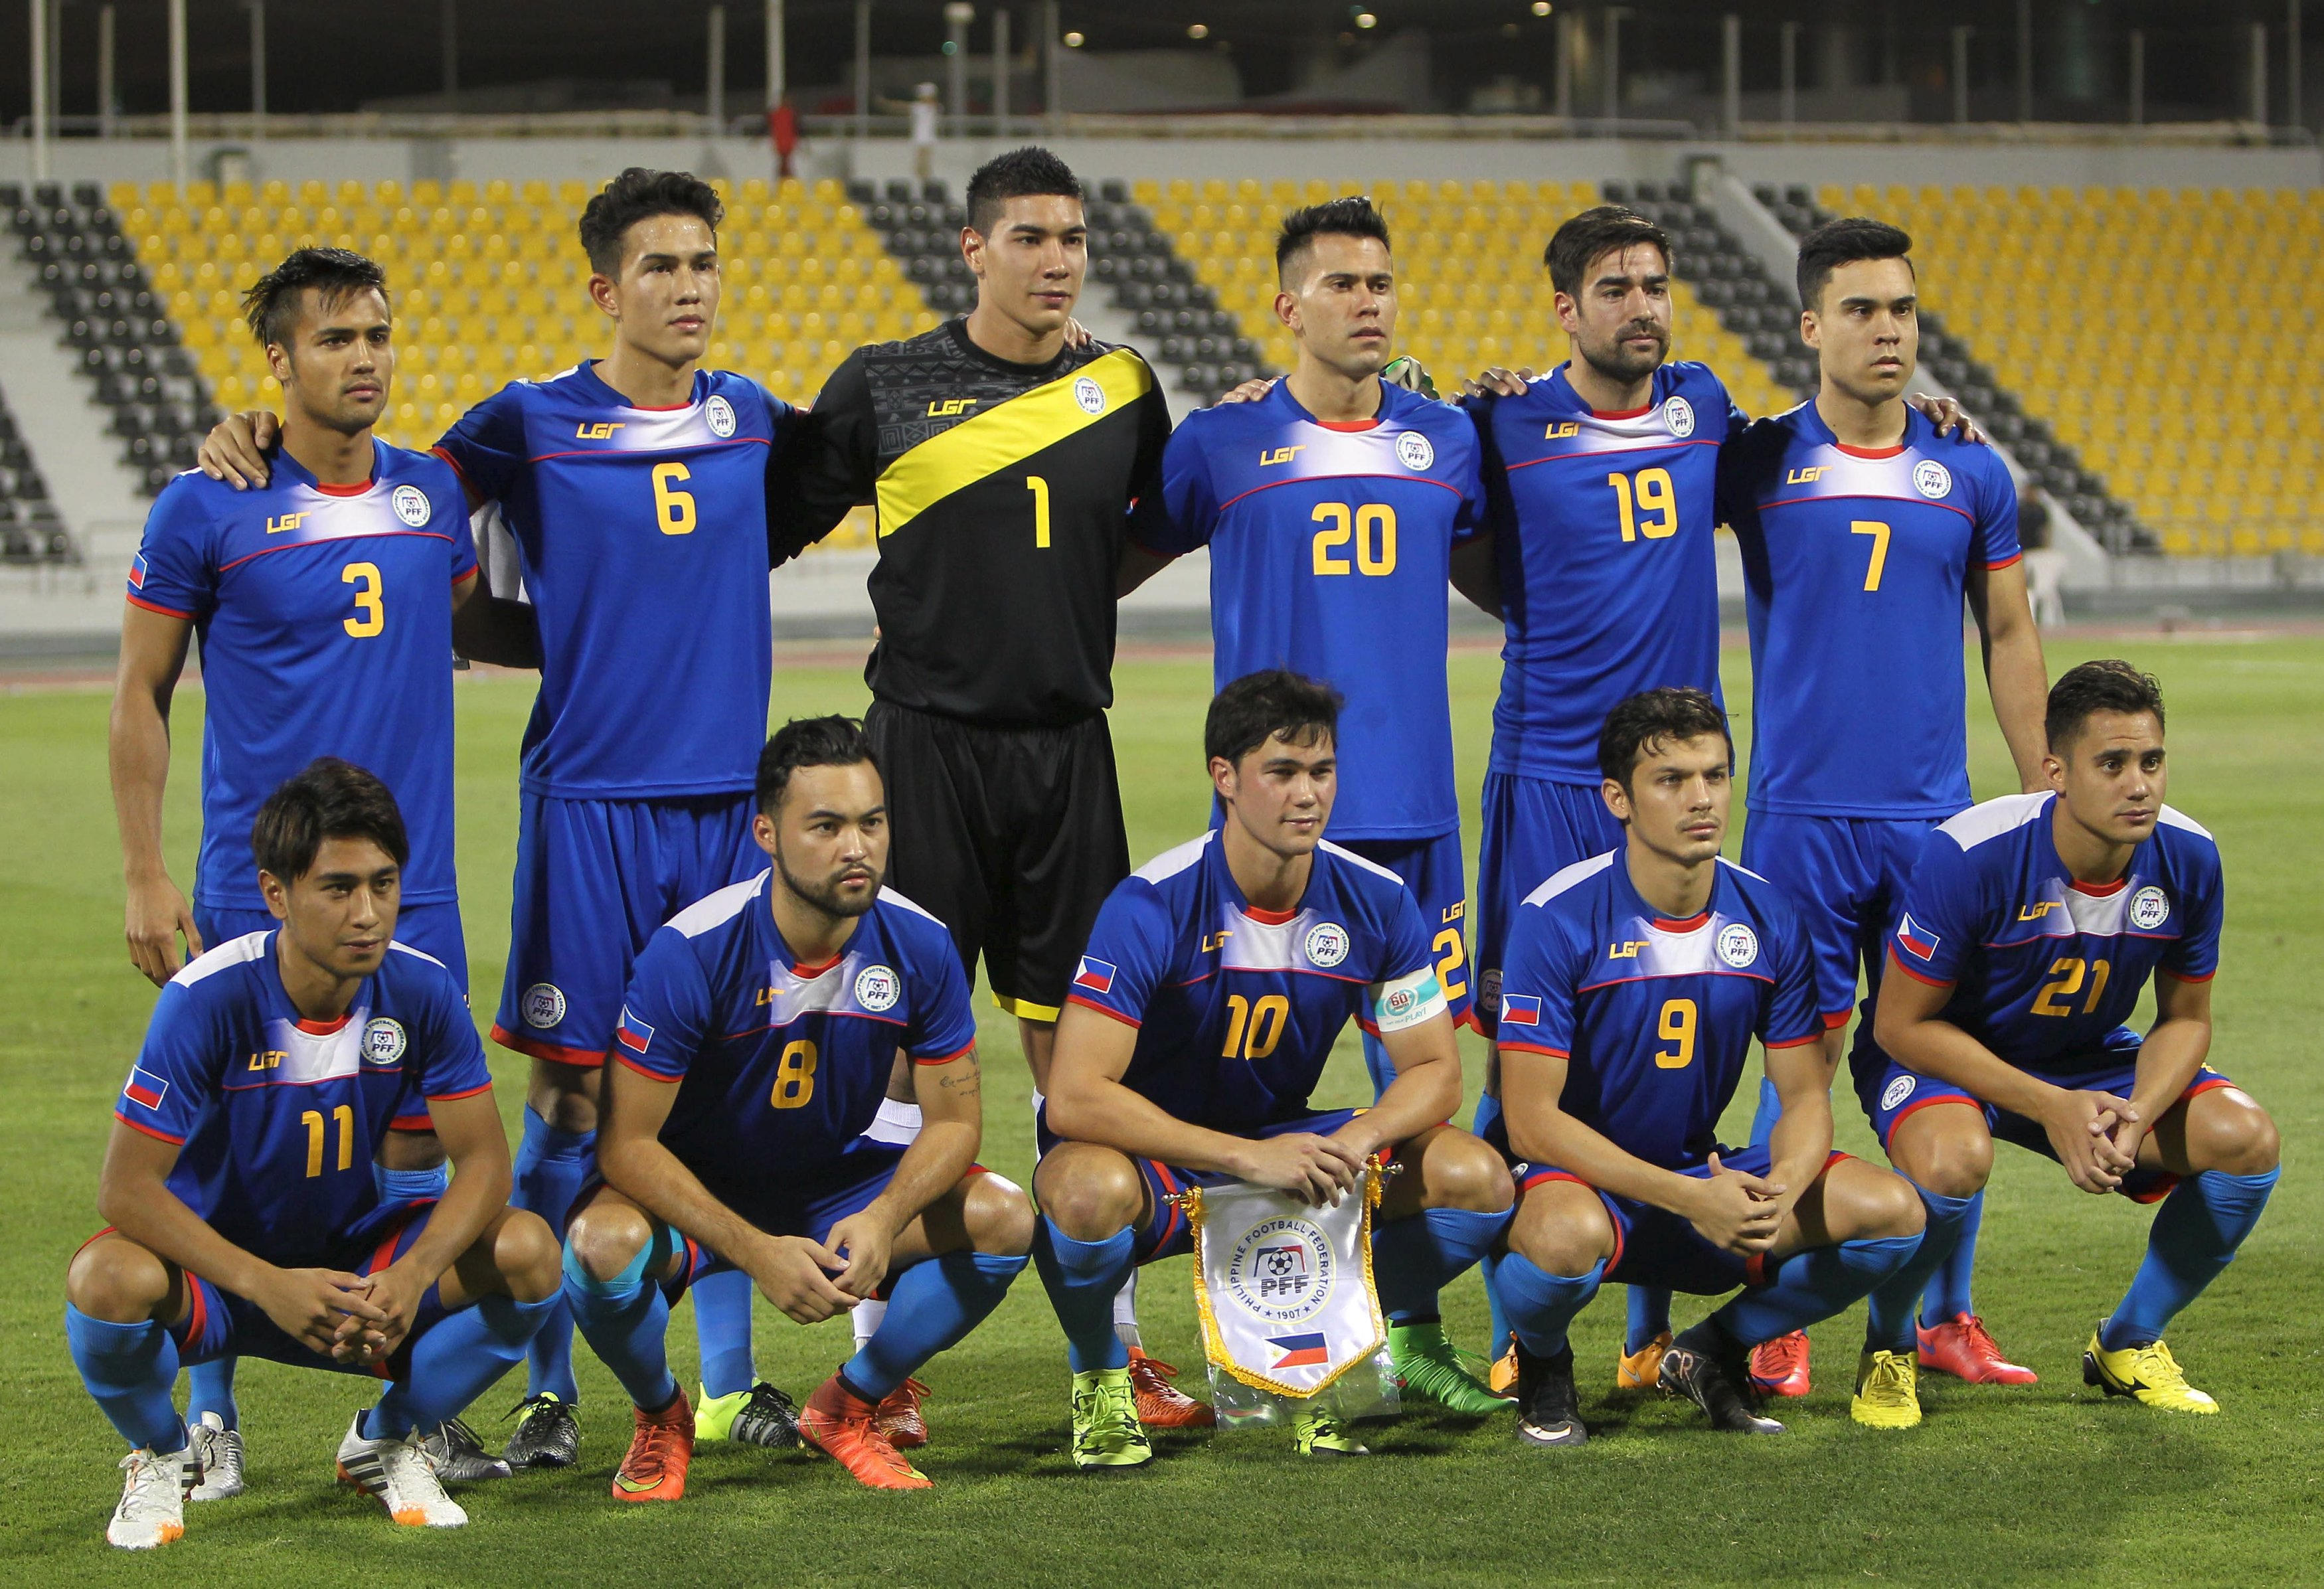 The Philippines' players pose for a photo before their 2018 World Cup qualifying soccer match against Yemen in Doha June 16, 2015. REUTERS/Ibrahem Alomari